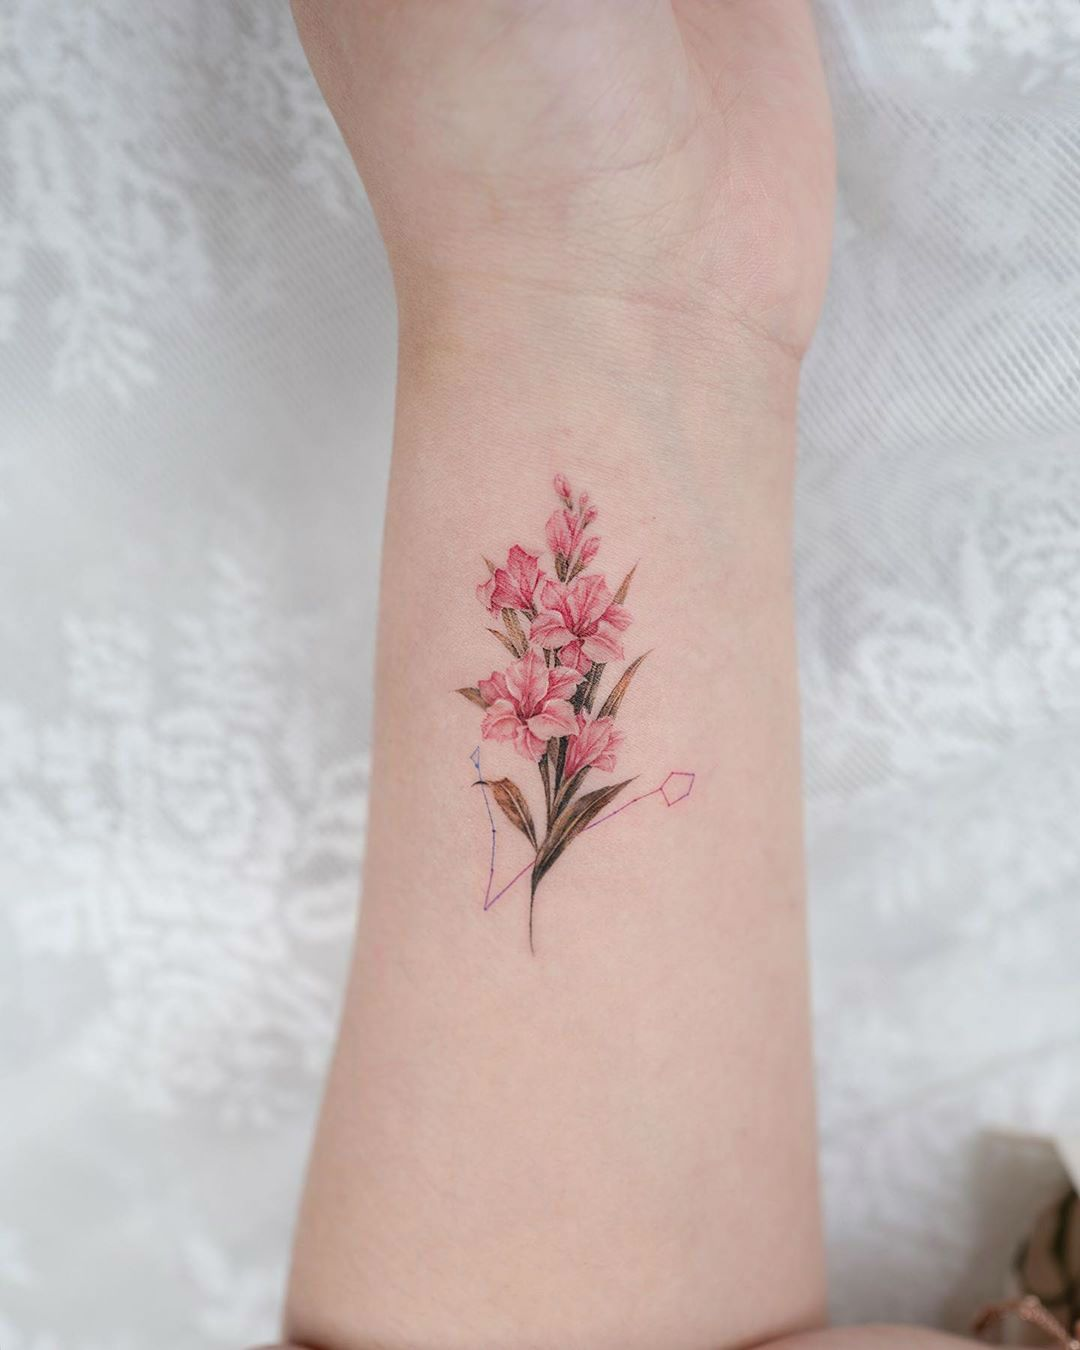 27 Graceful Gladiolus Tattoos And What This Beautiful Flower Symbolizes In 2020 Gladiolus Tattoo Lilly Flower Tattoo Tattoos